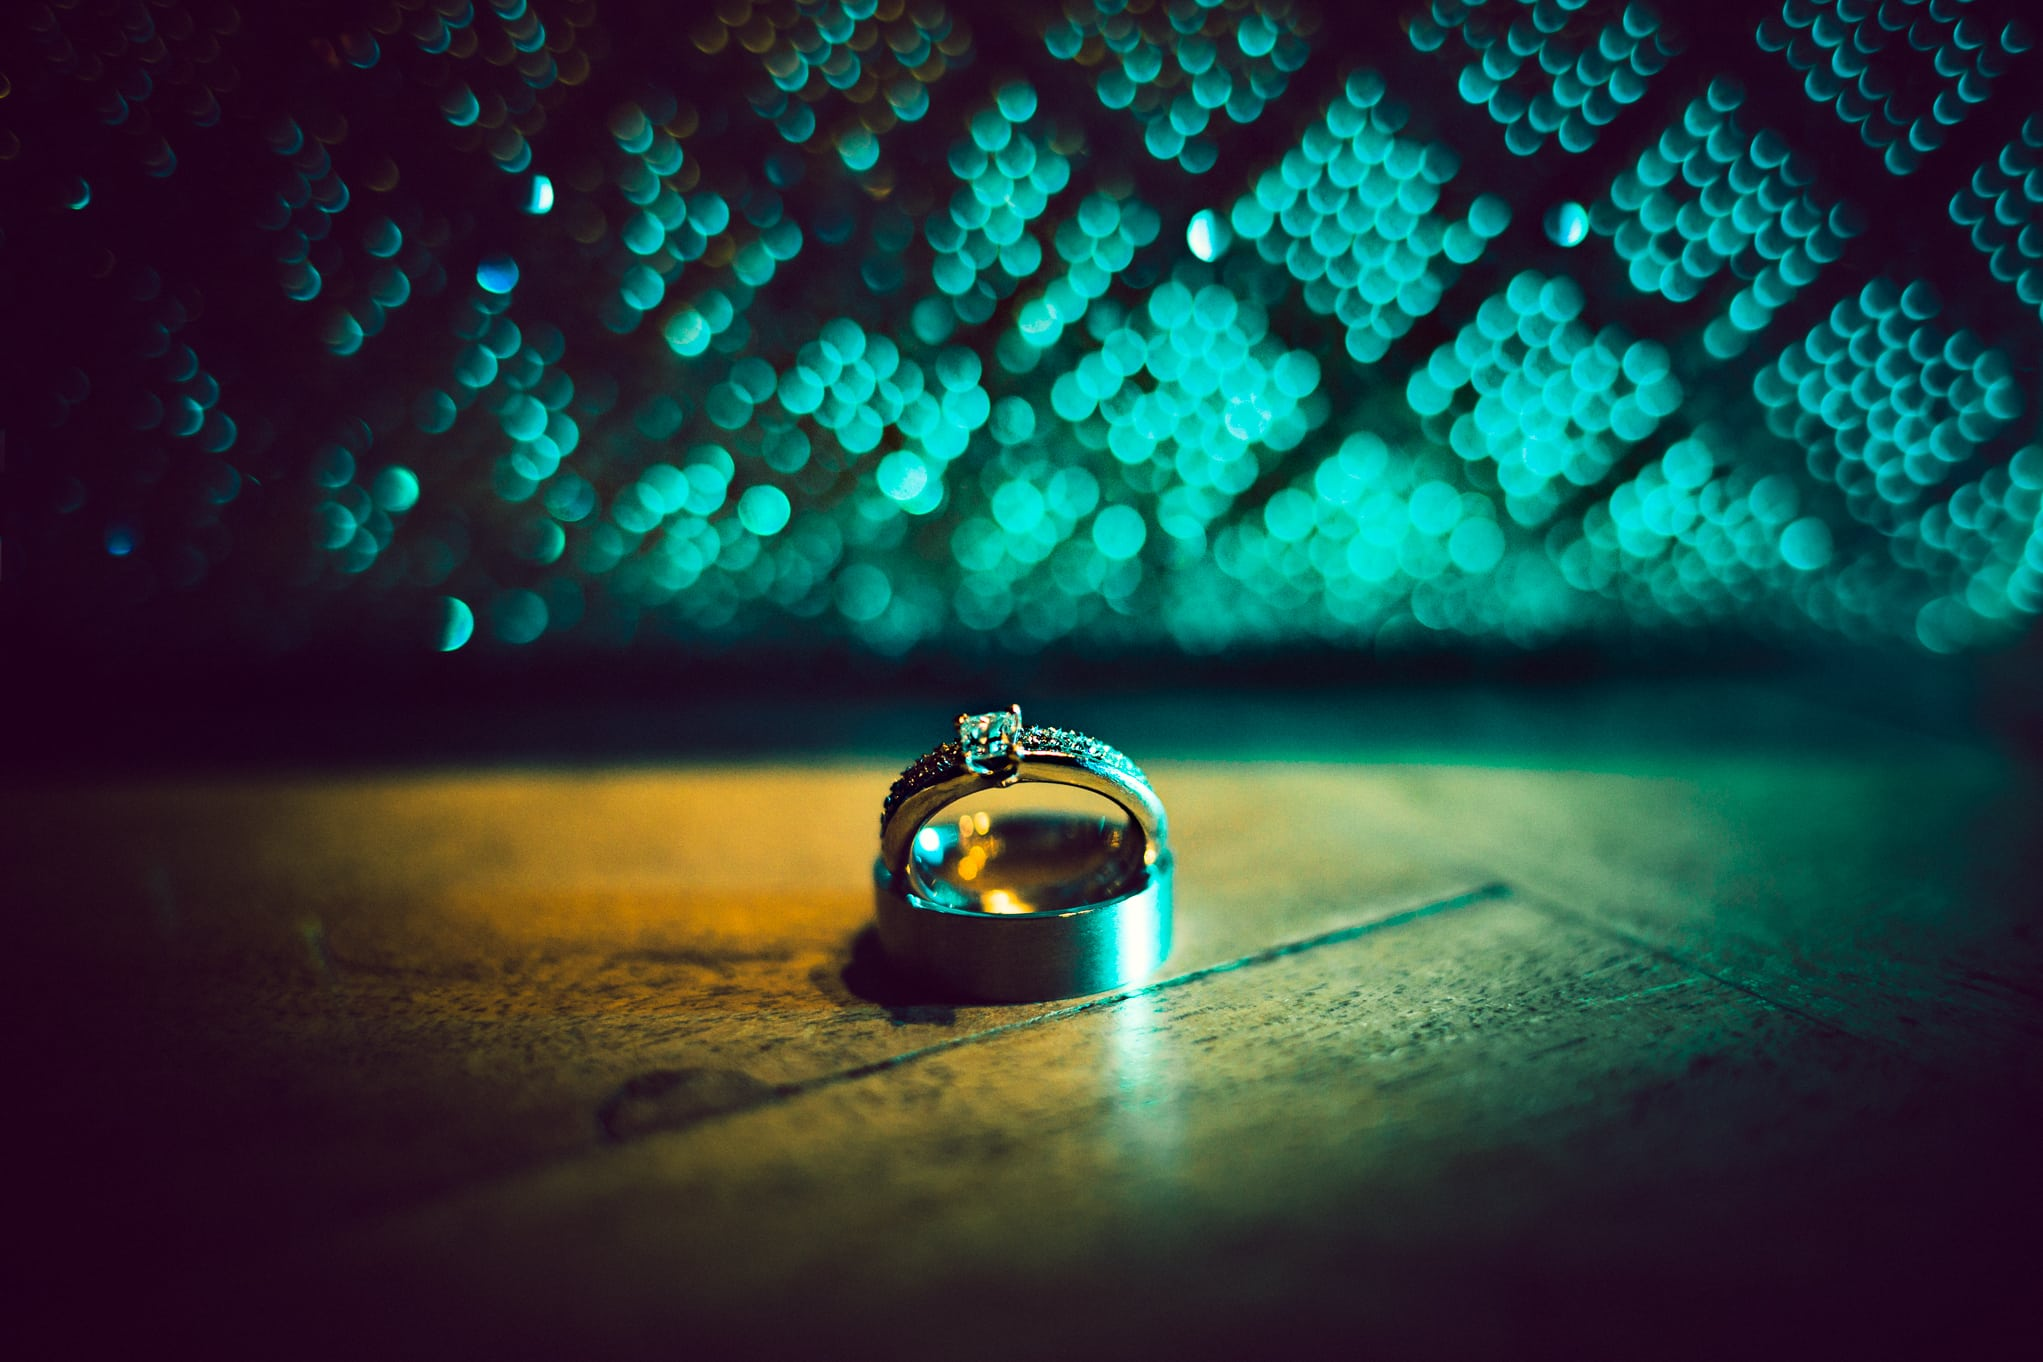 Le Petit Chateau, wedding ring bokeh